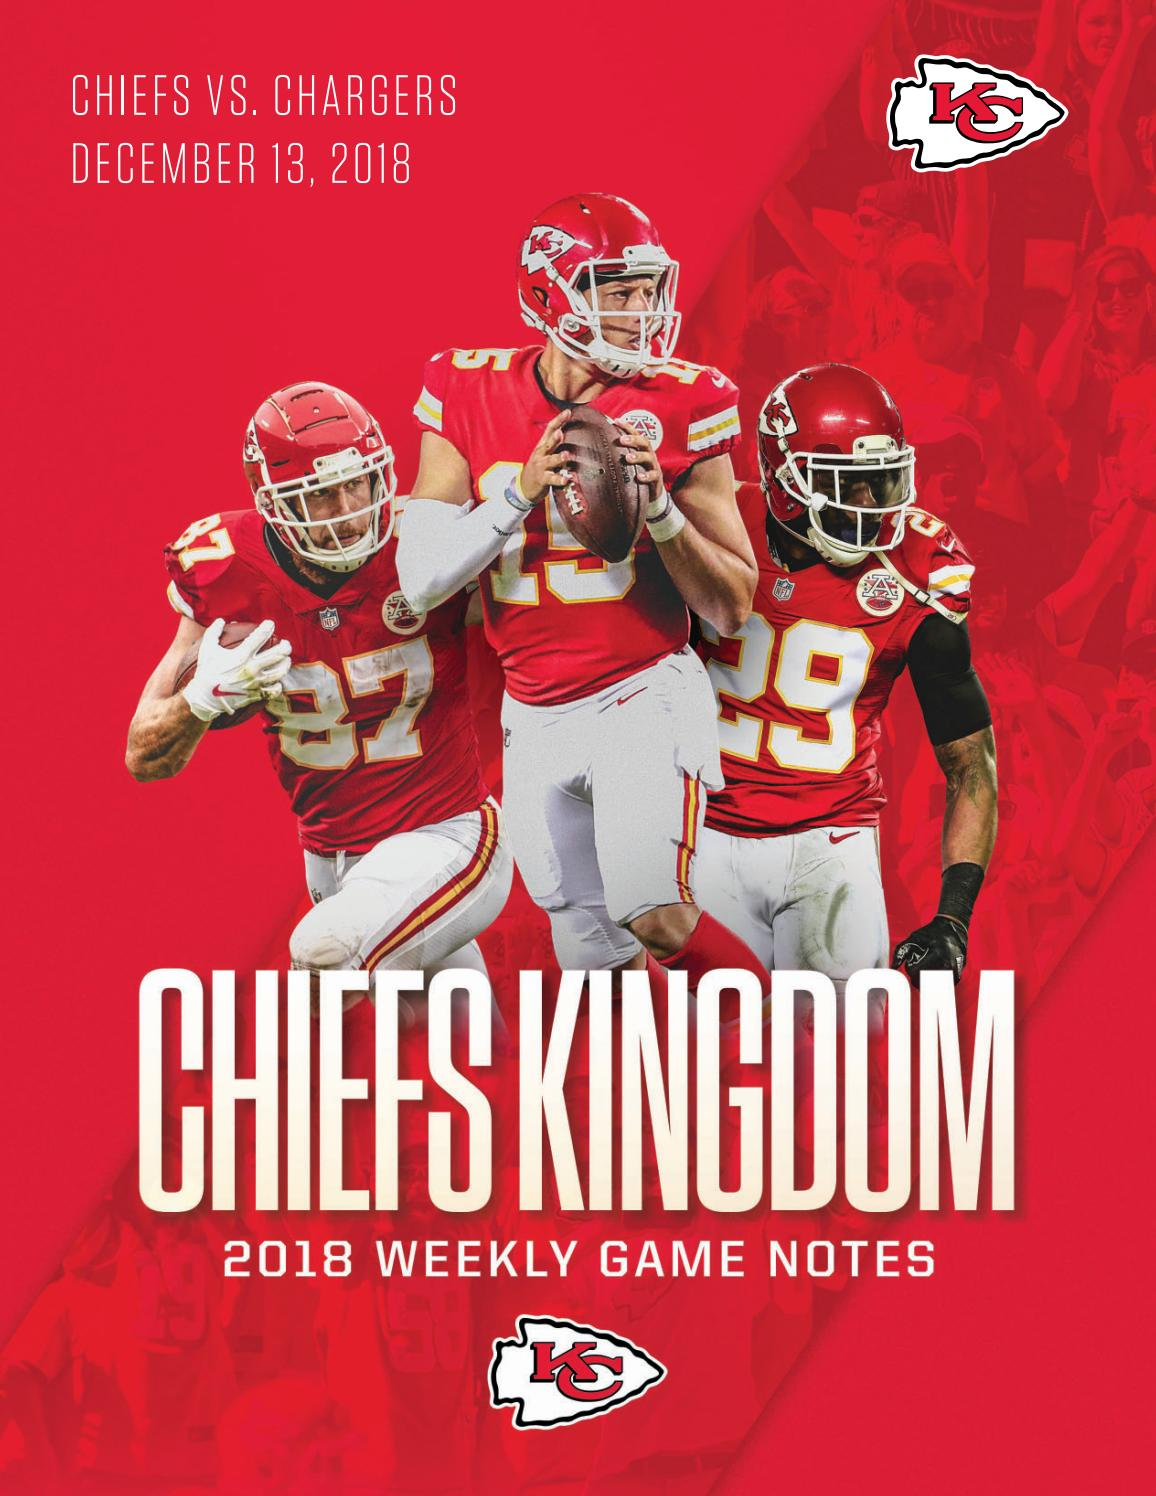 349cbf456 Regular Season Game 14 - Chiefs vs. Chargers (12-13-18) by Kansas City  Chiefs - issuu